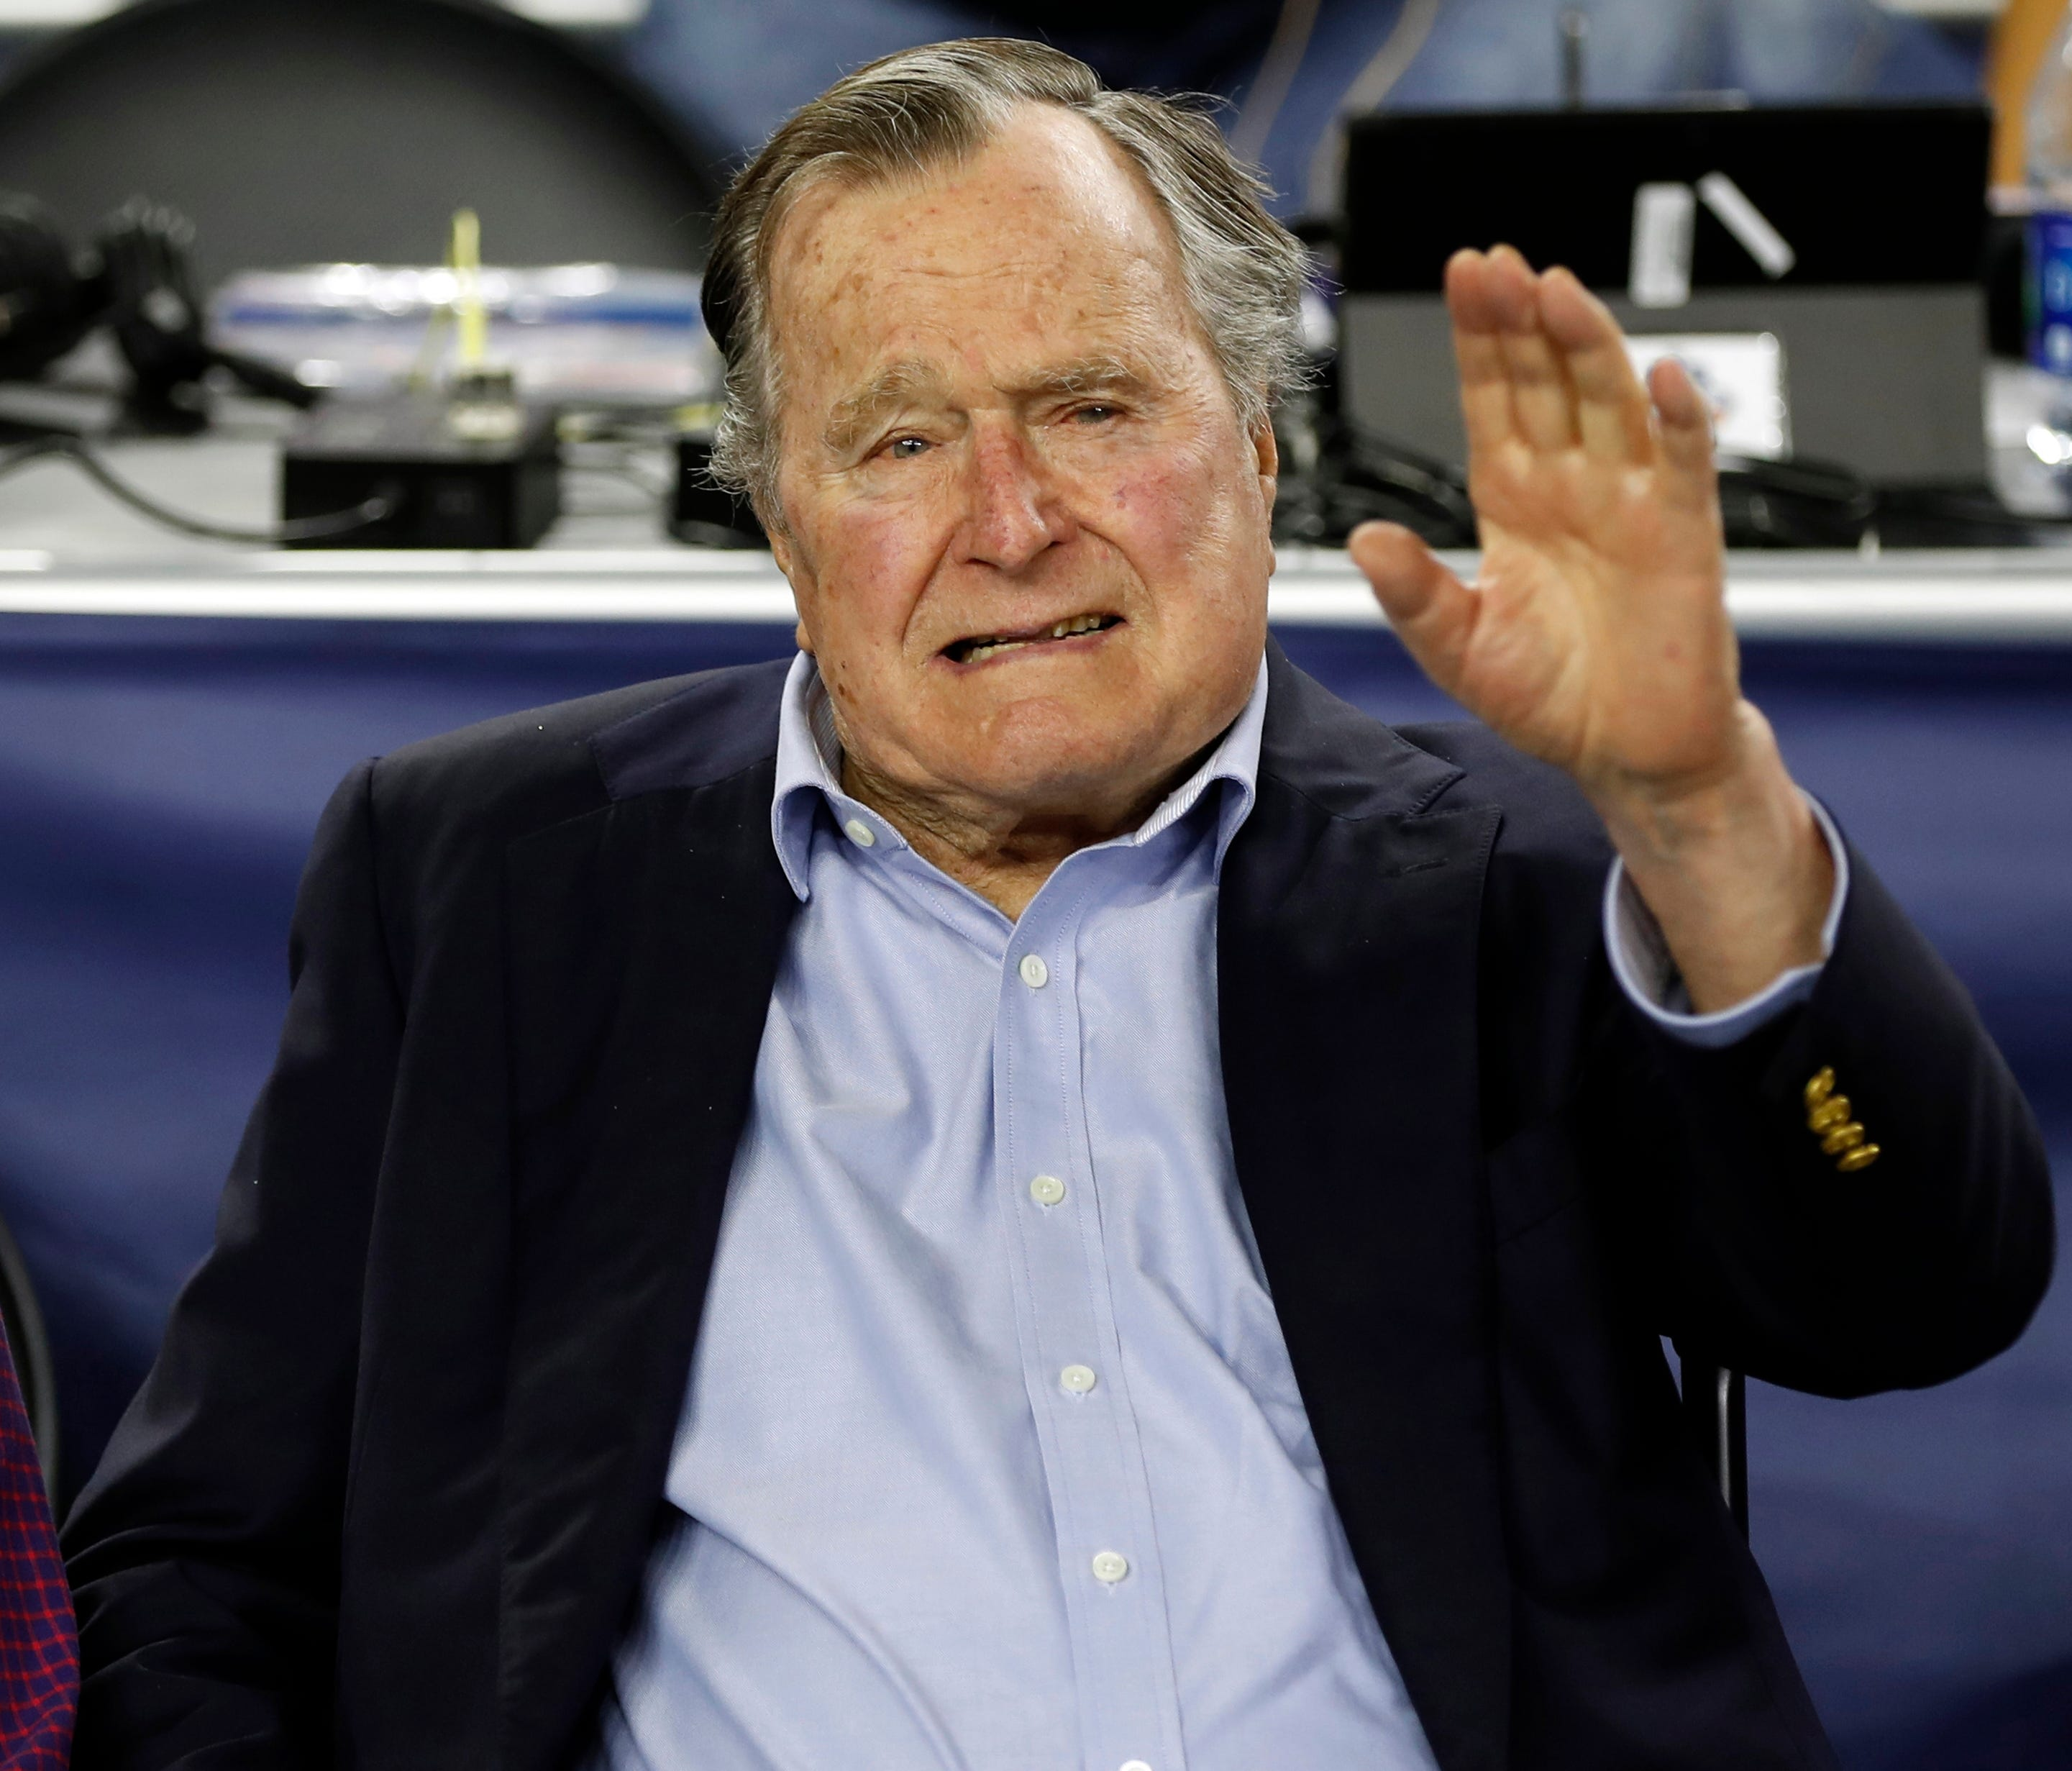 FILE - In this Saturday, April 2, 2016, file photo, former U.S. President George H. W. Bush waves as he arrives at NRG Stadium before the NCAA Final Four tournament college basketball semifinal game between Villanova and Oklahoma in Houston. Bush arr